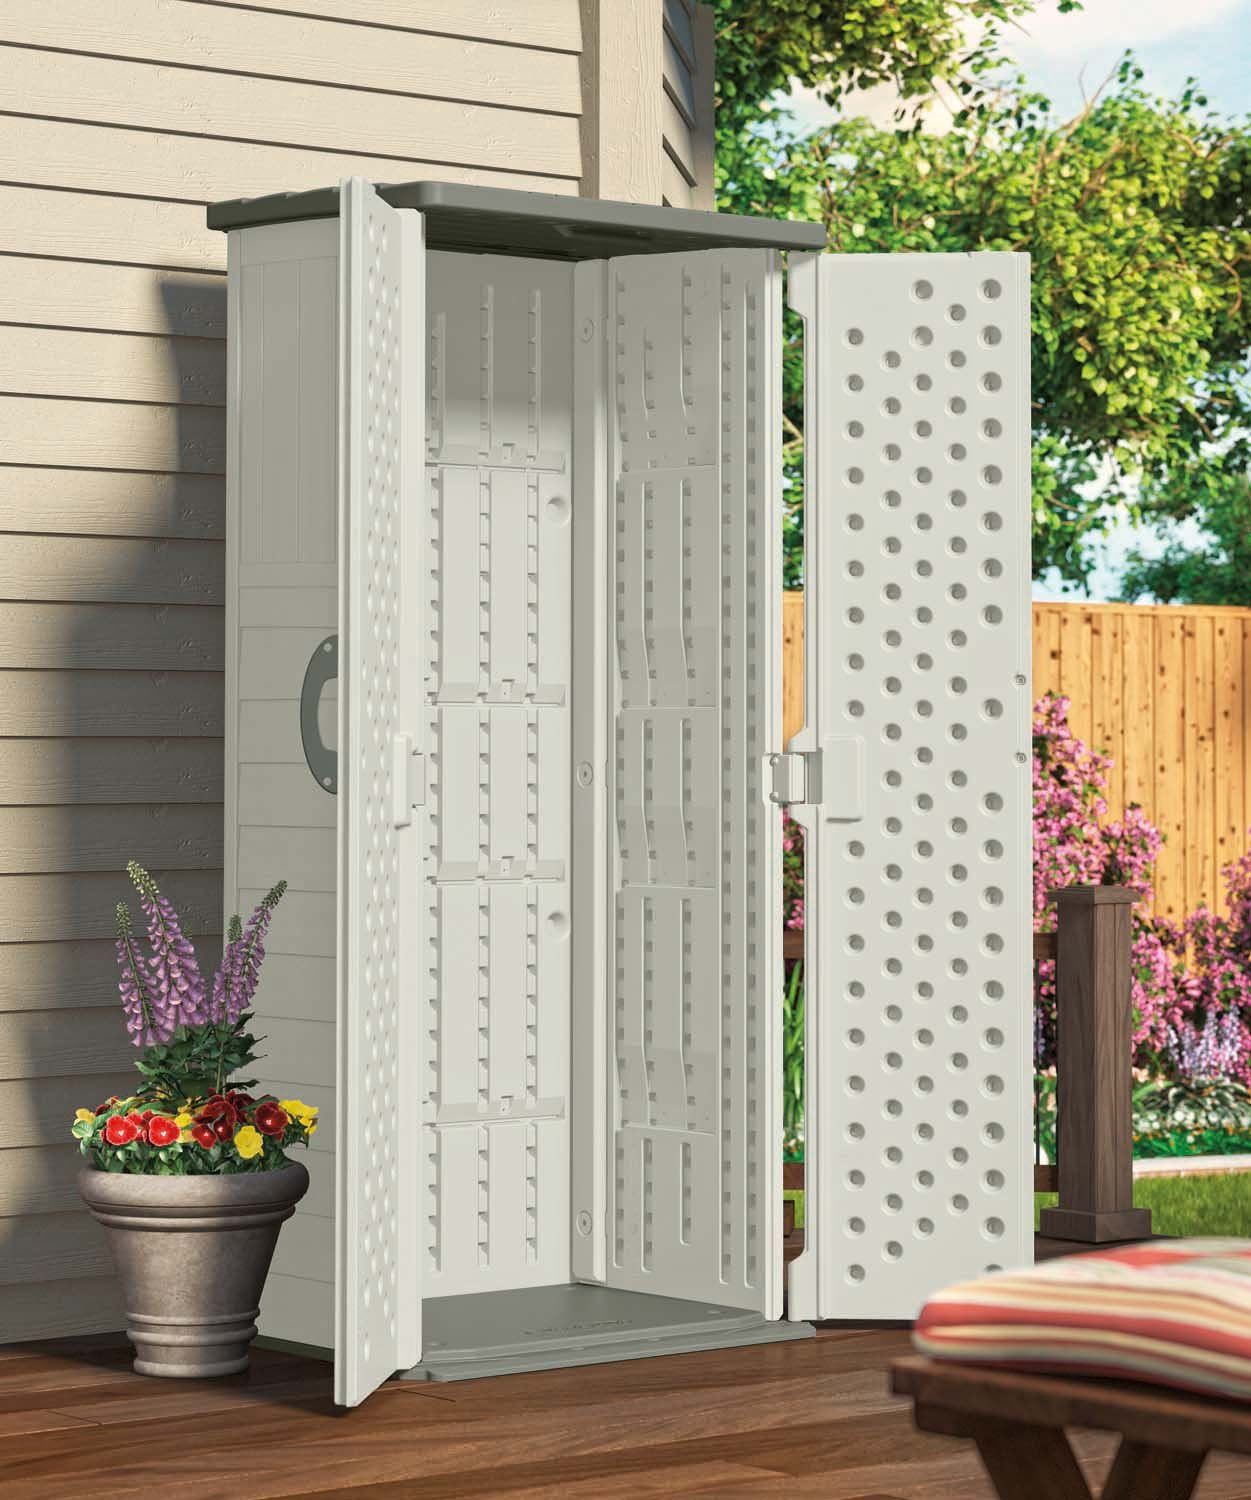 Amazon.com  Suncast BMS1250 Shed Tool Vertical 22 cu. ft.  Storage Sheds  Garden u0026 Outdoor & Amazon.com : Suncast BMS1250 Shed Tool Vertical 22 cu. ft ...